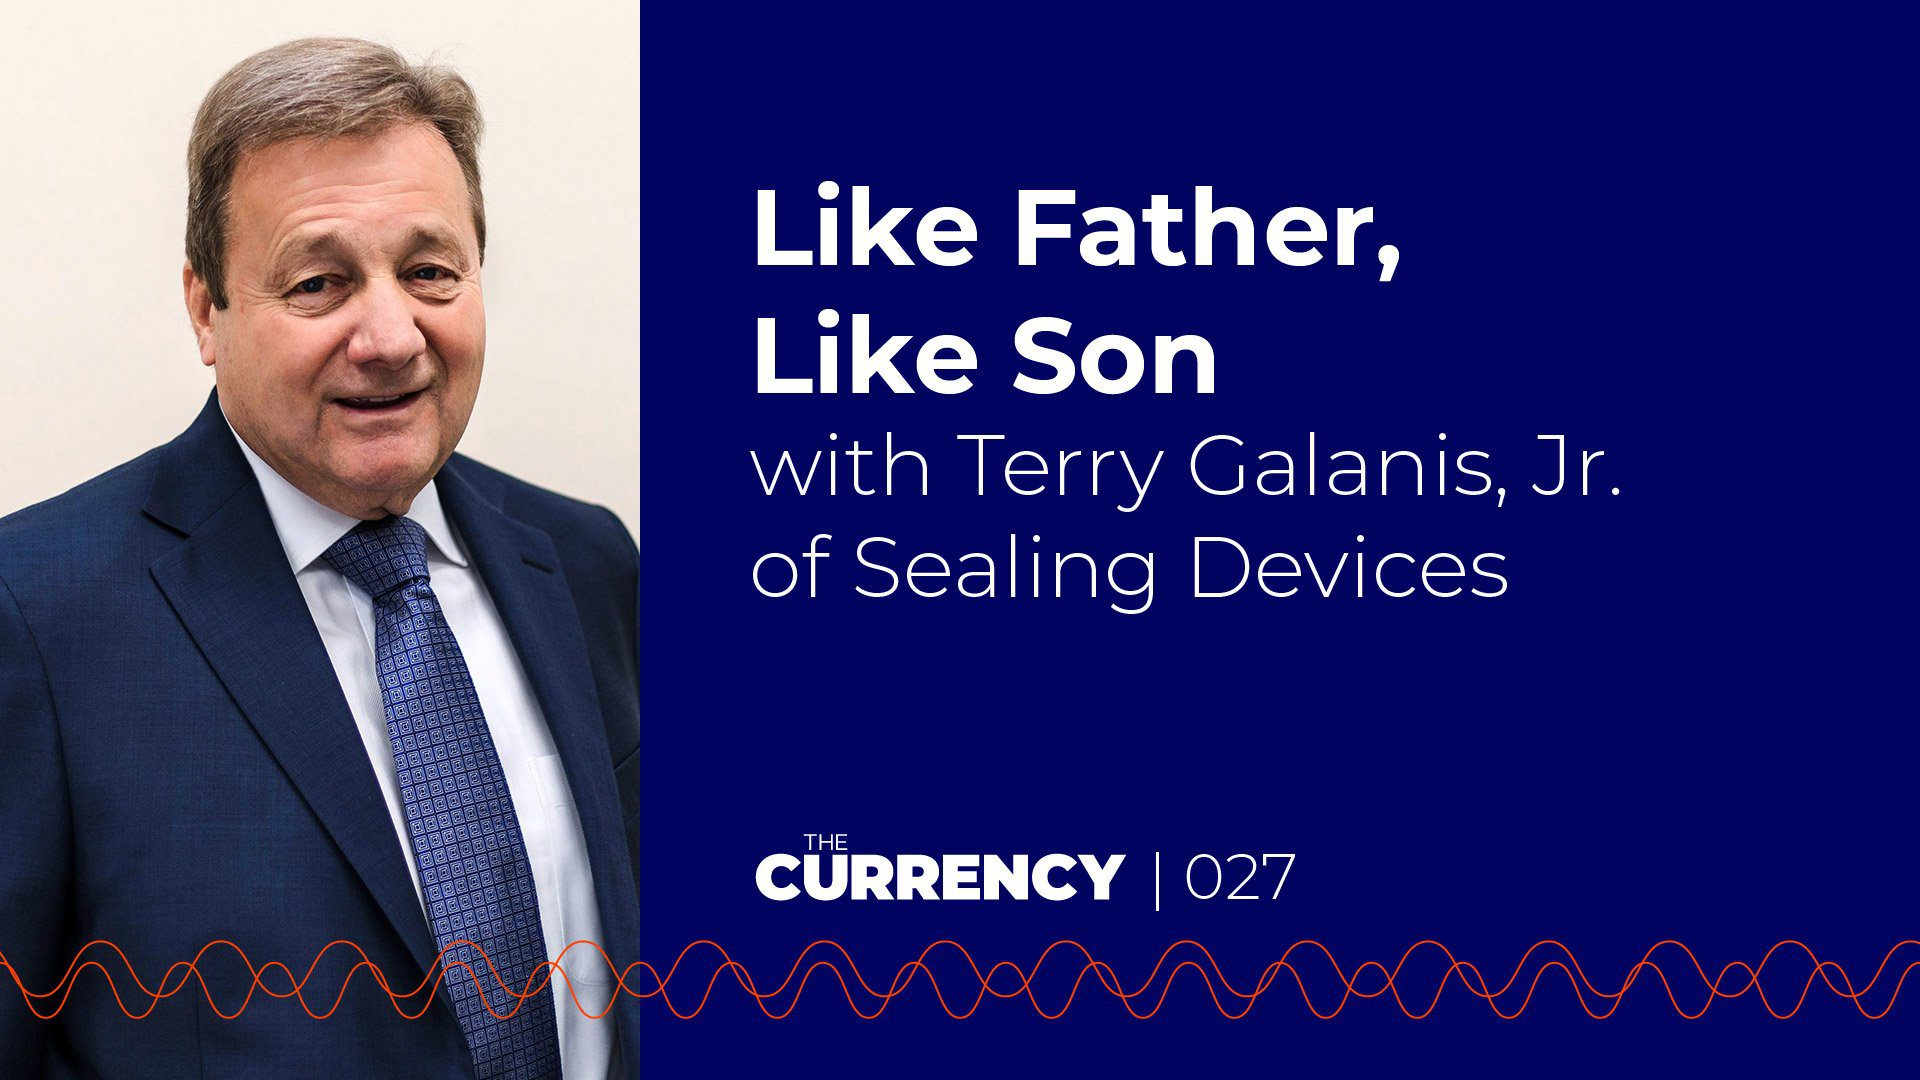 Terry Galanis, Jr. on The Currency podcast